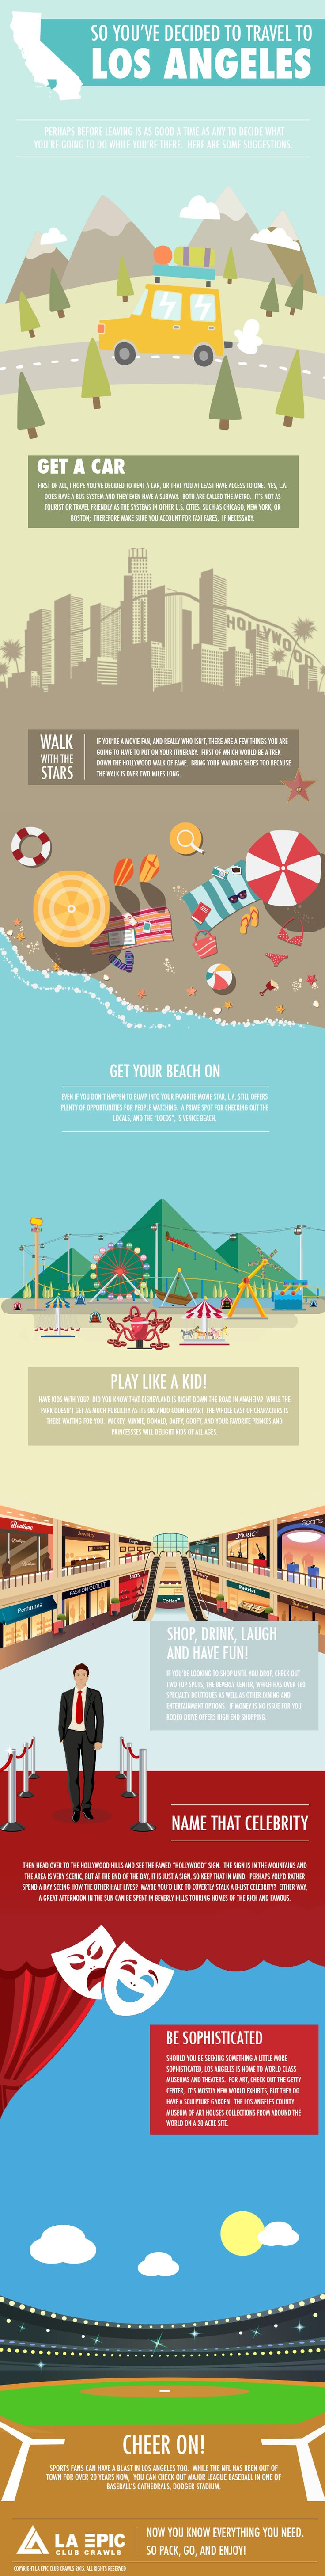 Things to Do in Los Angeles #infographic #Travel #LosAngeles